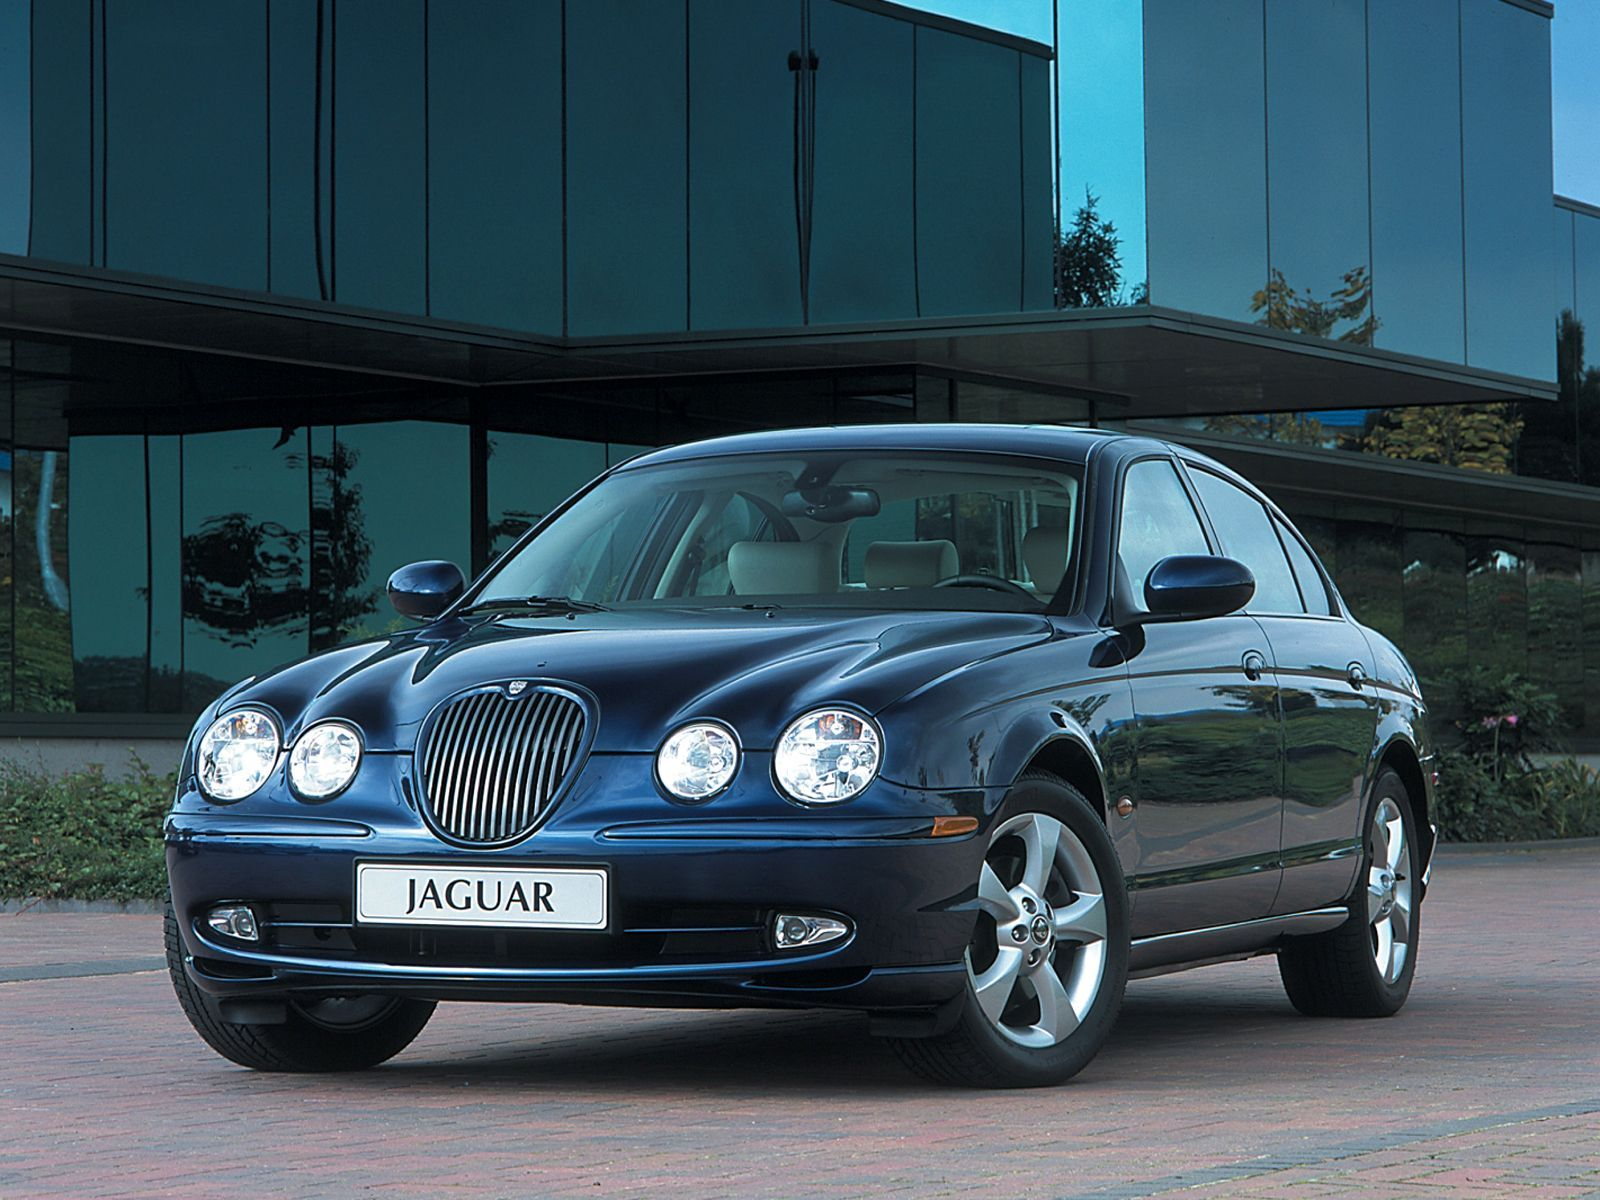 2003 jaguar s type exterior pictures cargurus. Black Bedroom Furniture Sets. Home Design Ideas